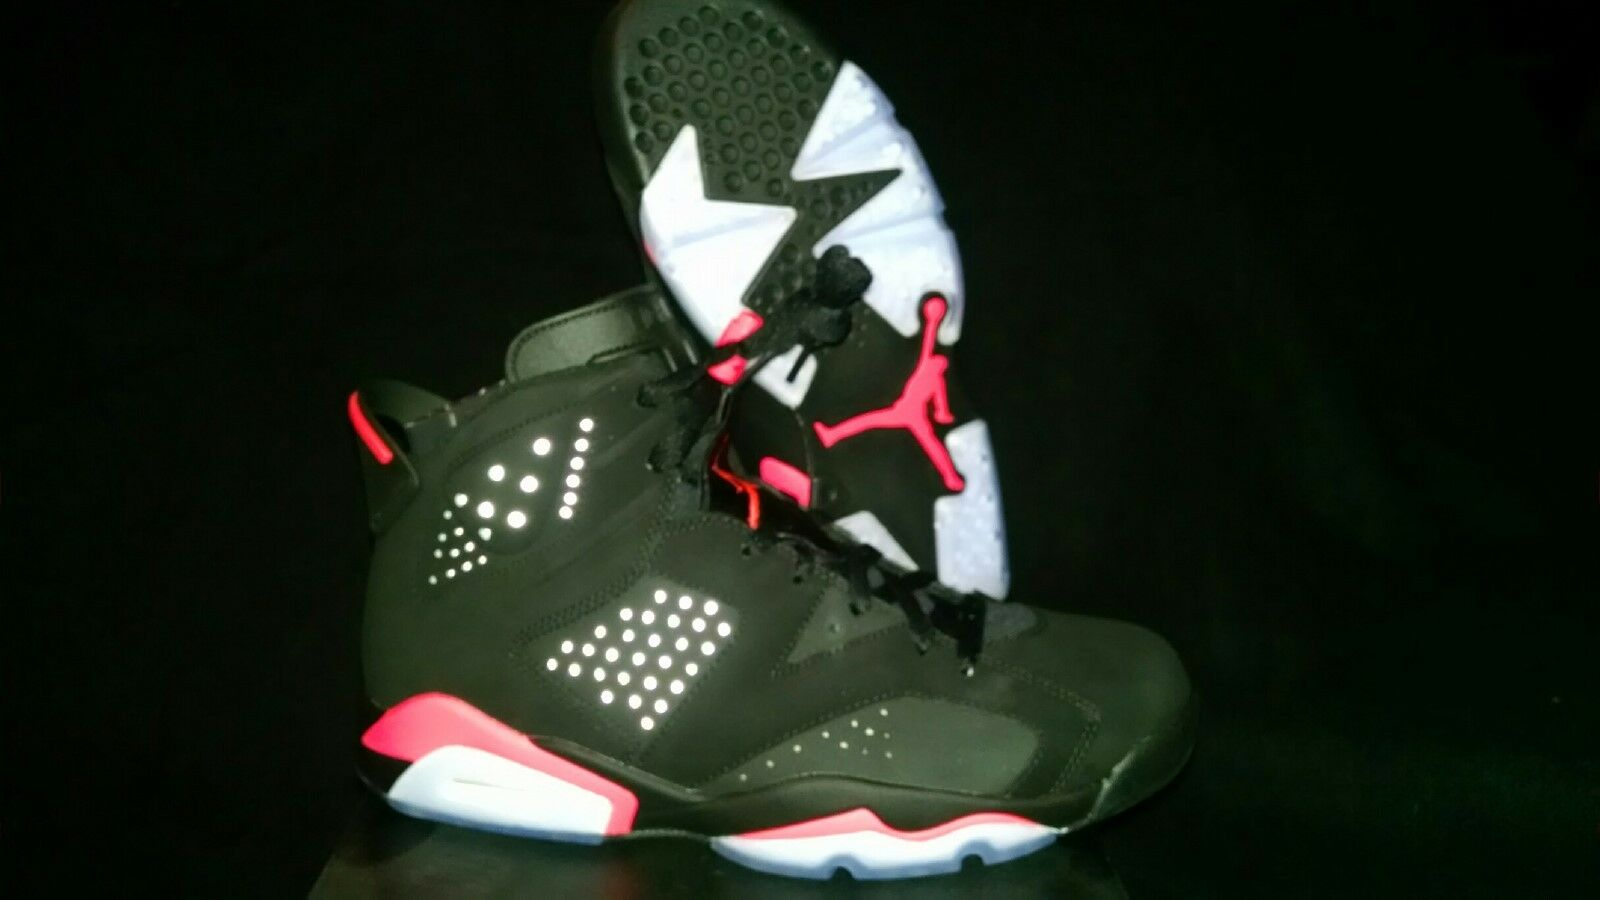 Air Jordan 6 Retro VI Black Infrared 2014 Black Friday 384664-023 Size 4-14